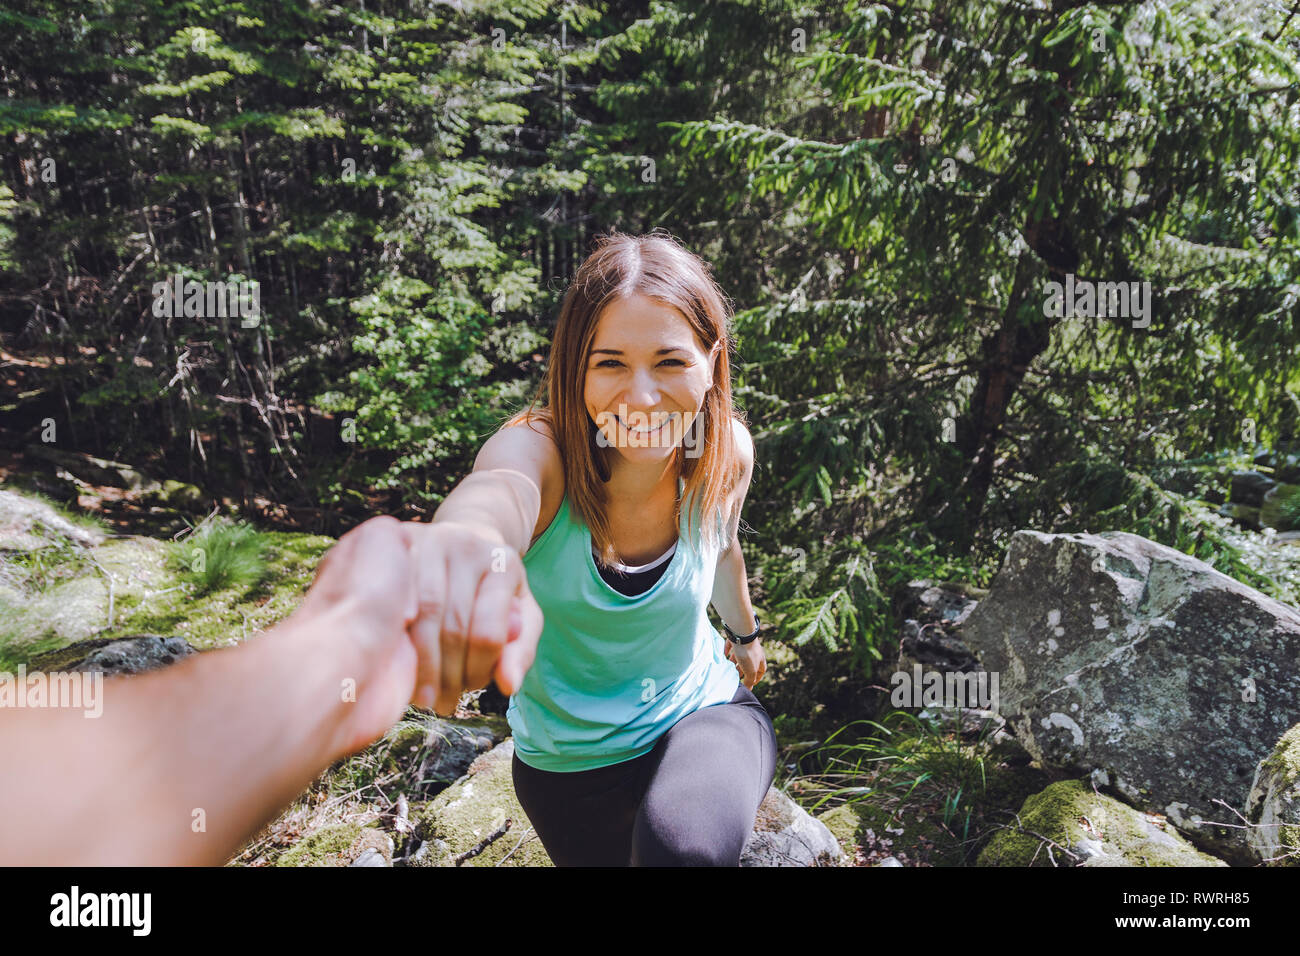 Young woman climbs mountain with help from boyfriend, surrounded by forest - Stock Image